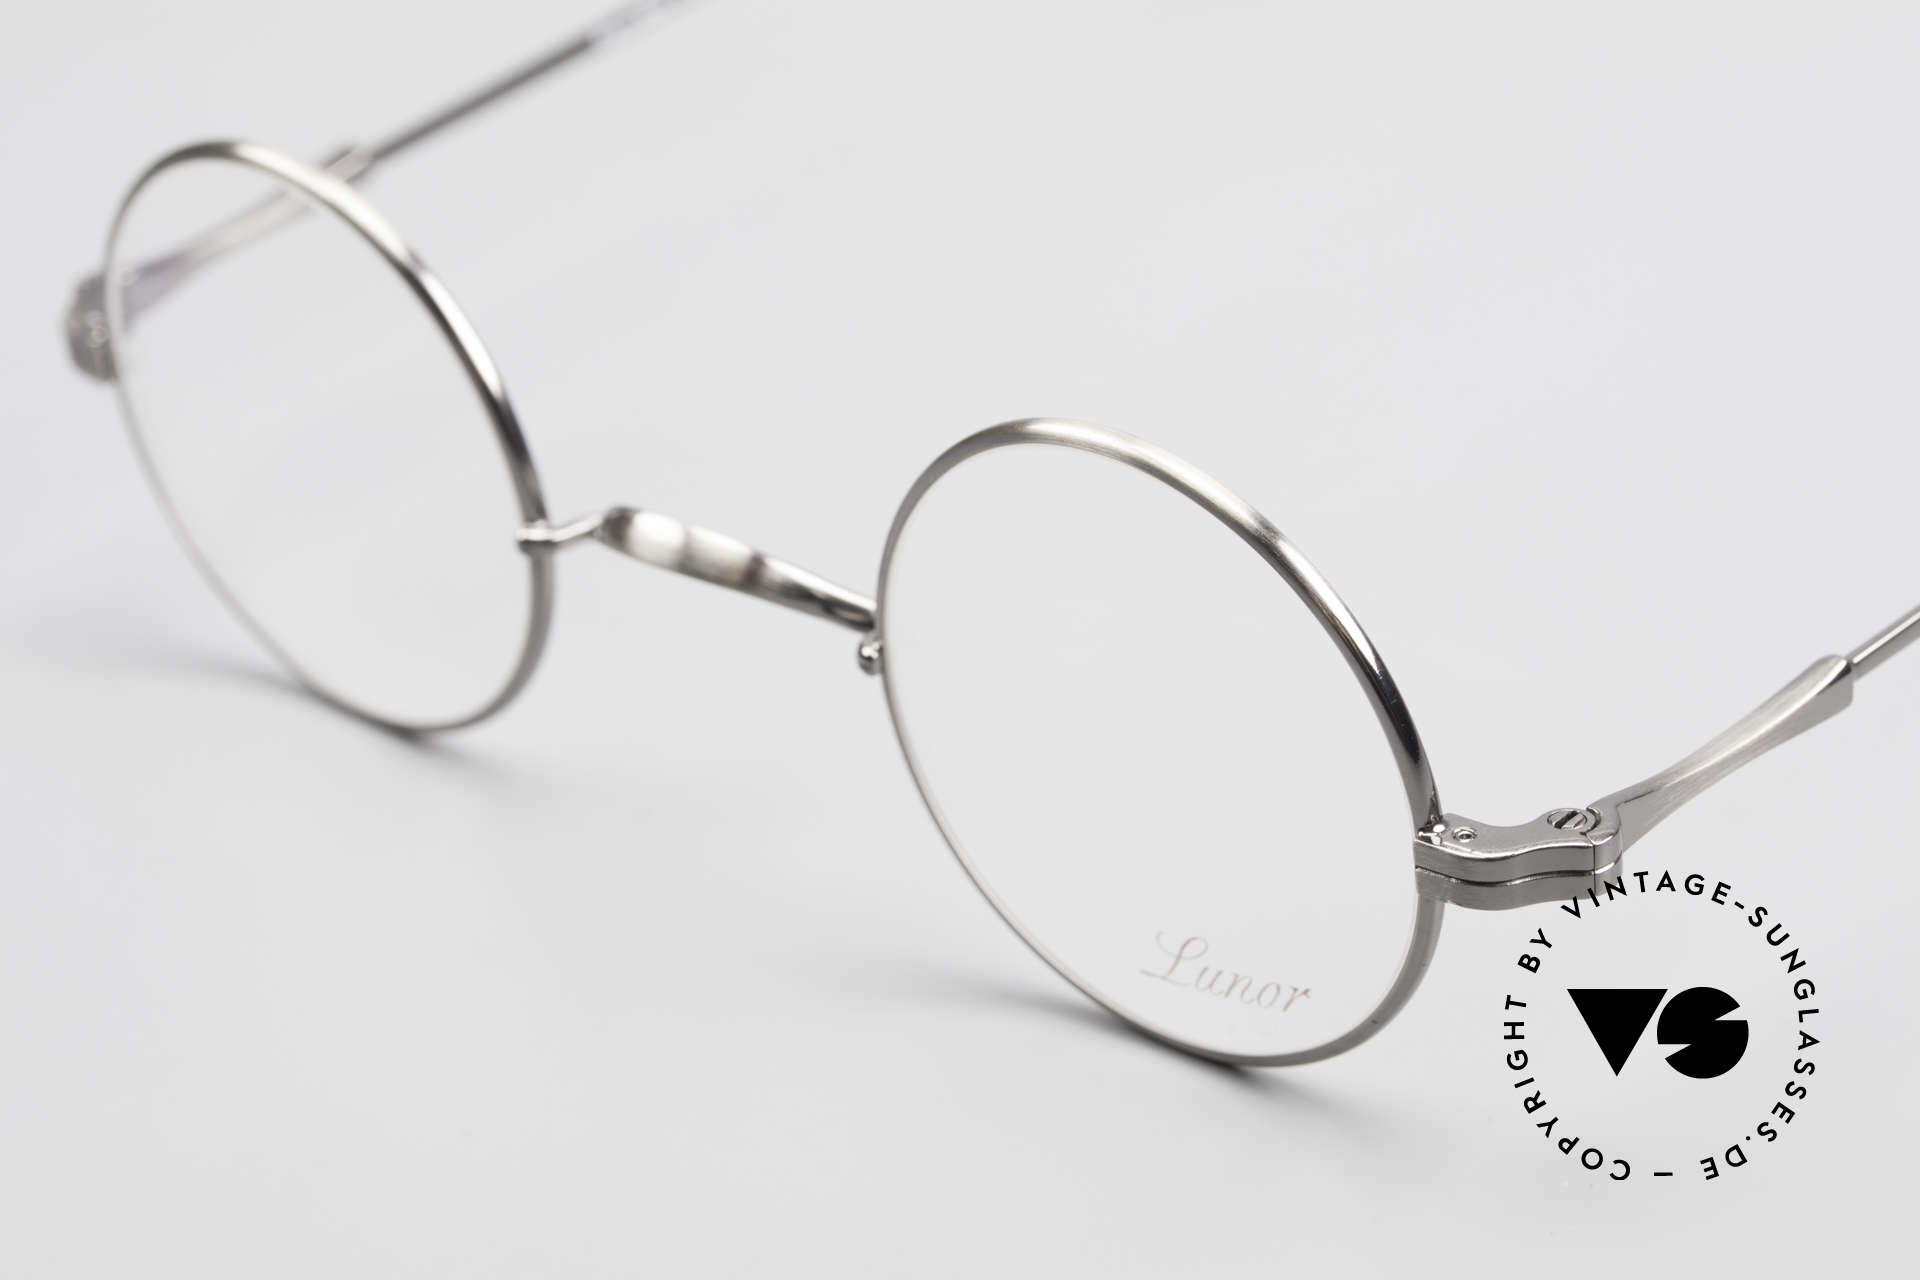 Lunor II 12 Small Round Luxury Glasses, unworn single item (for all lovers of quality), true rarity, Made for Men and Women